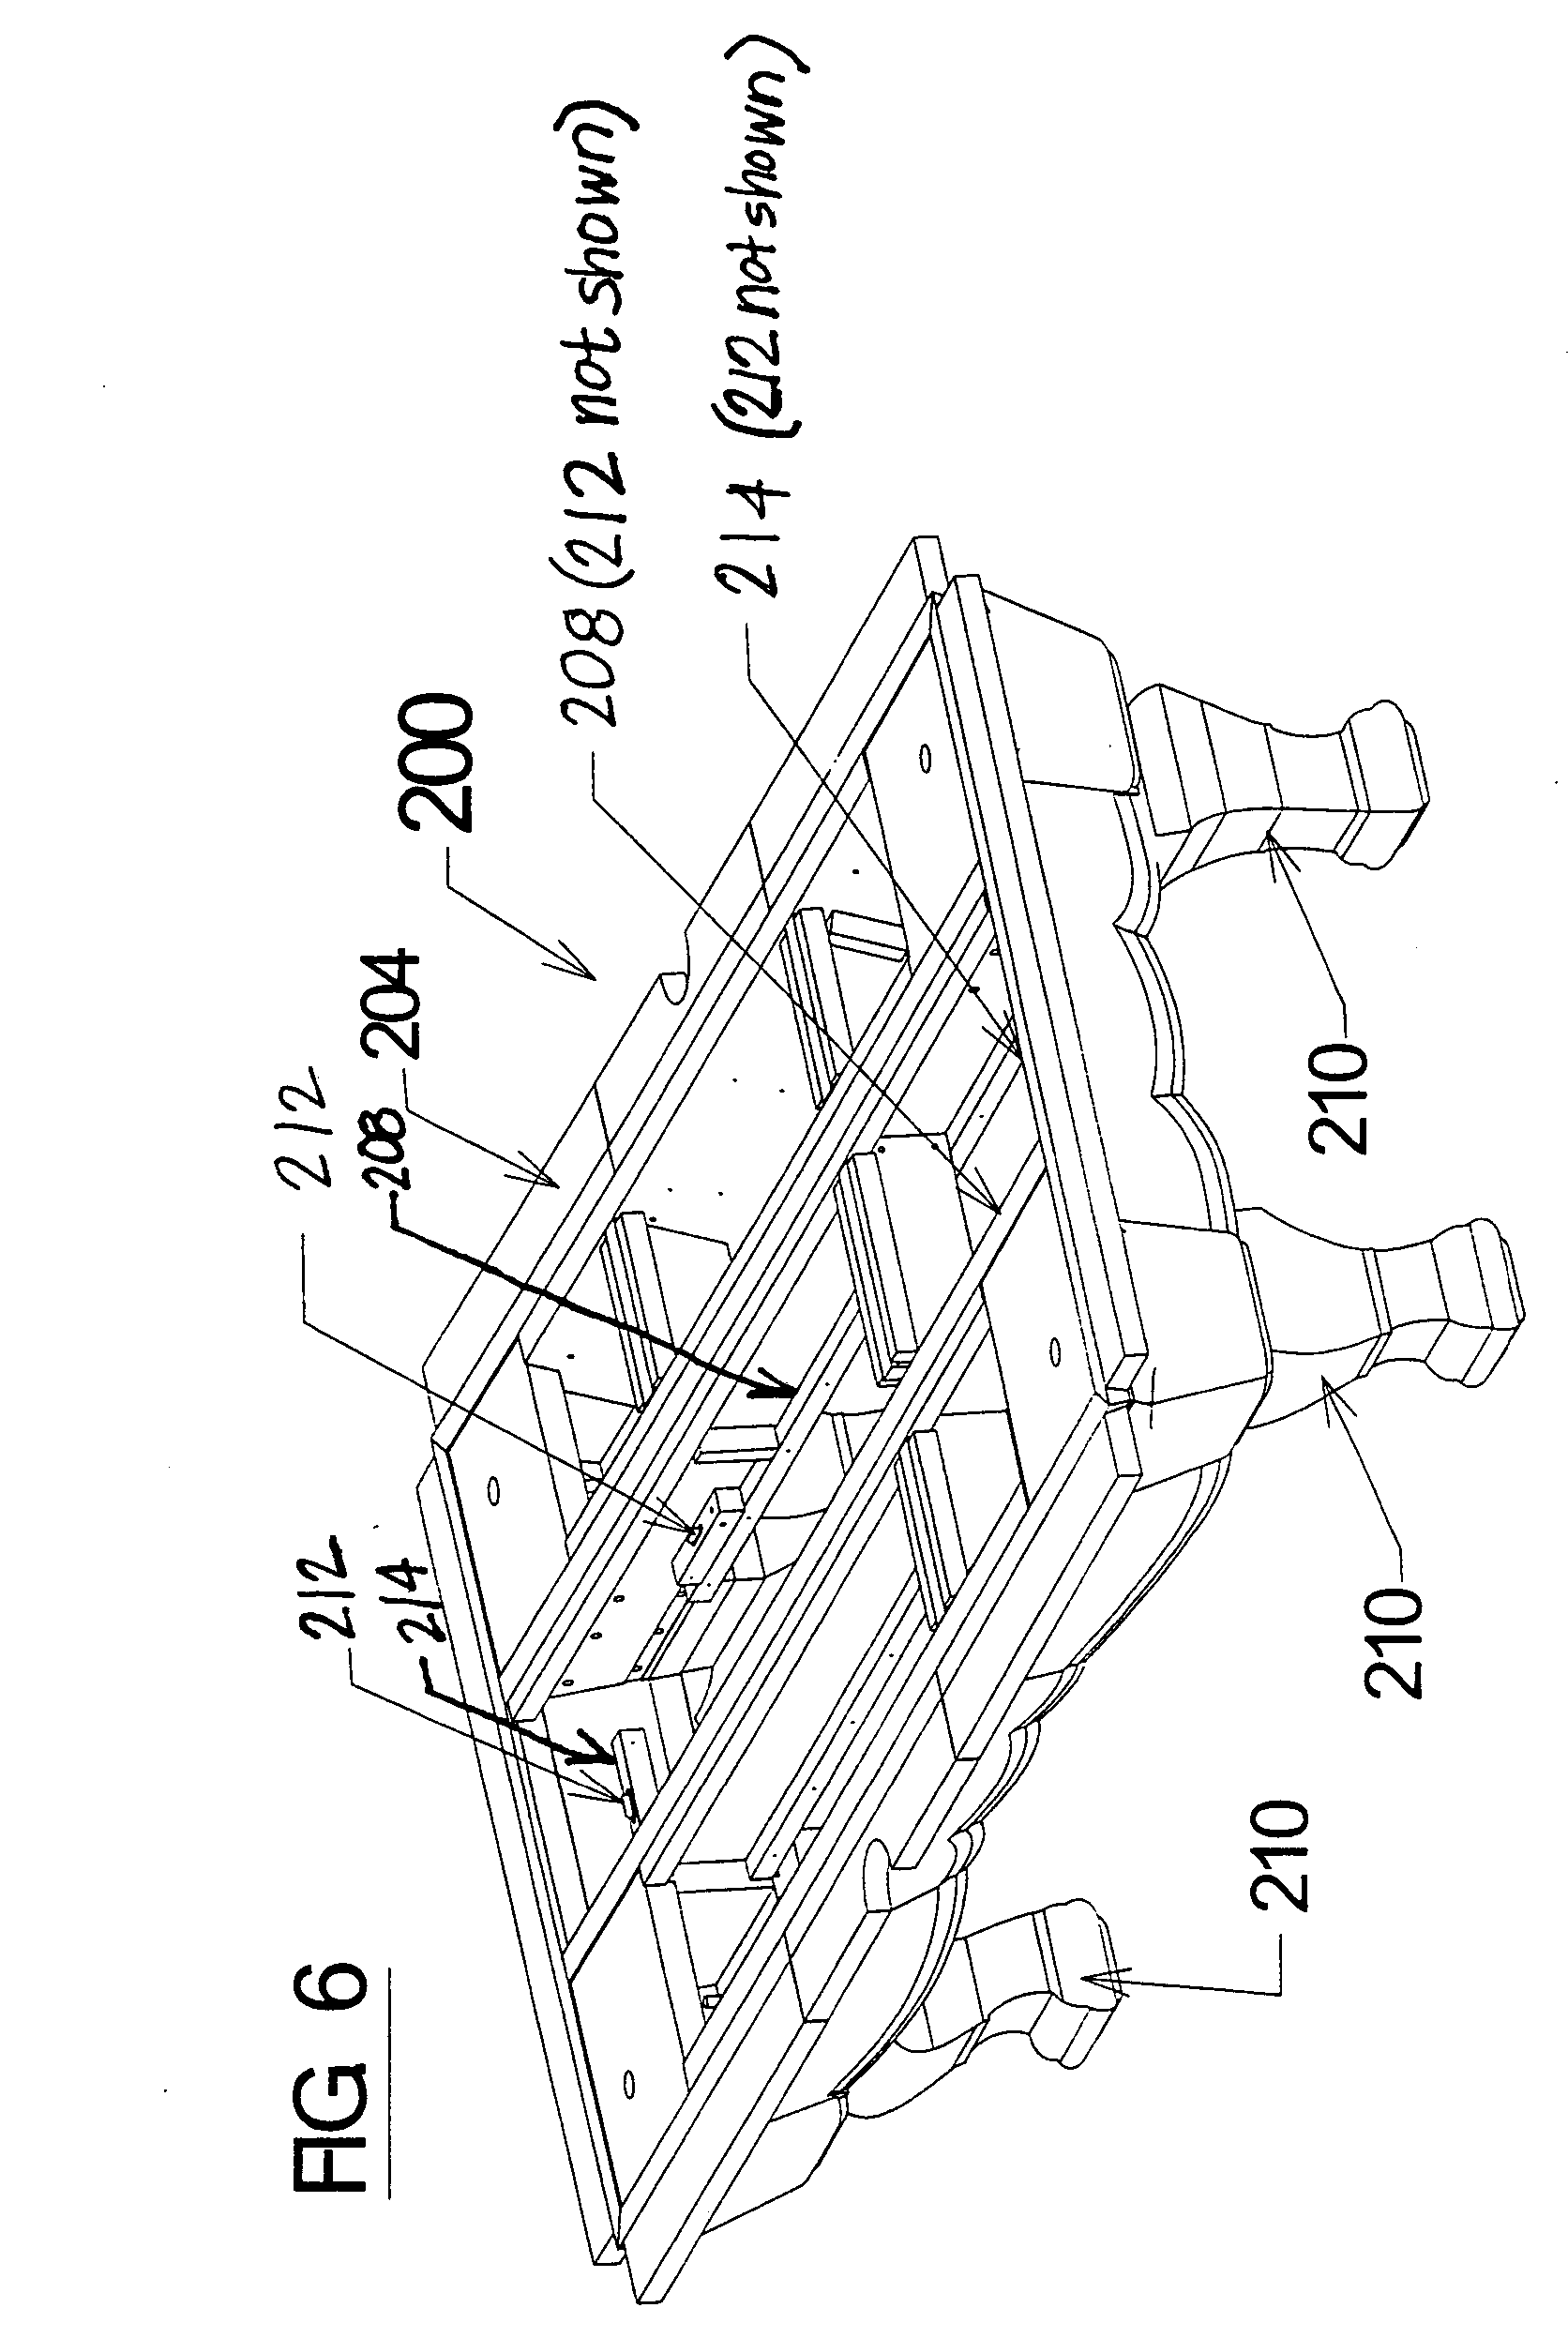 Patent Us20050282644 - Pool Table Improvements